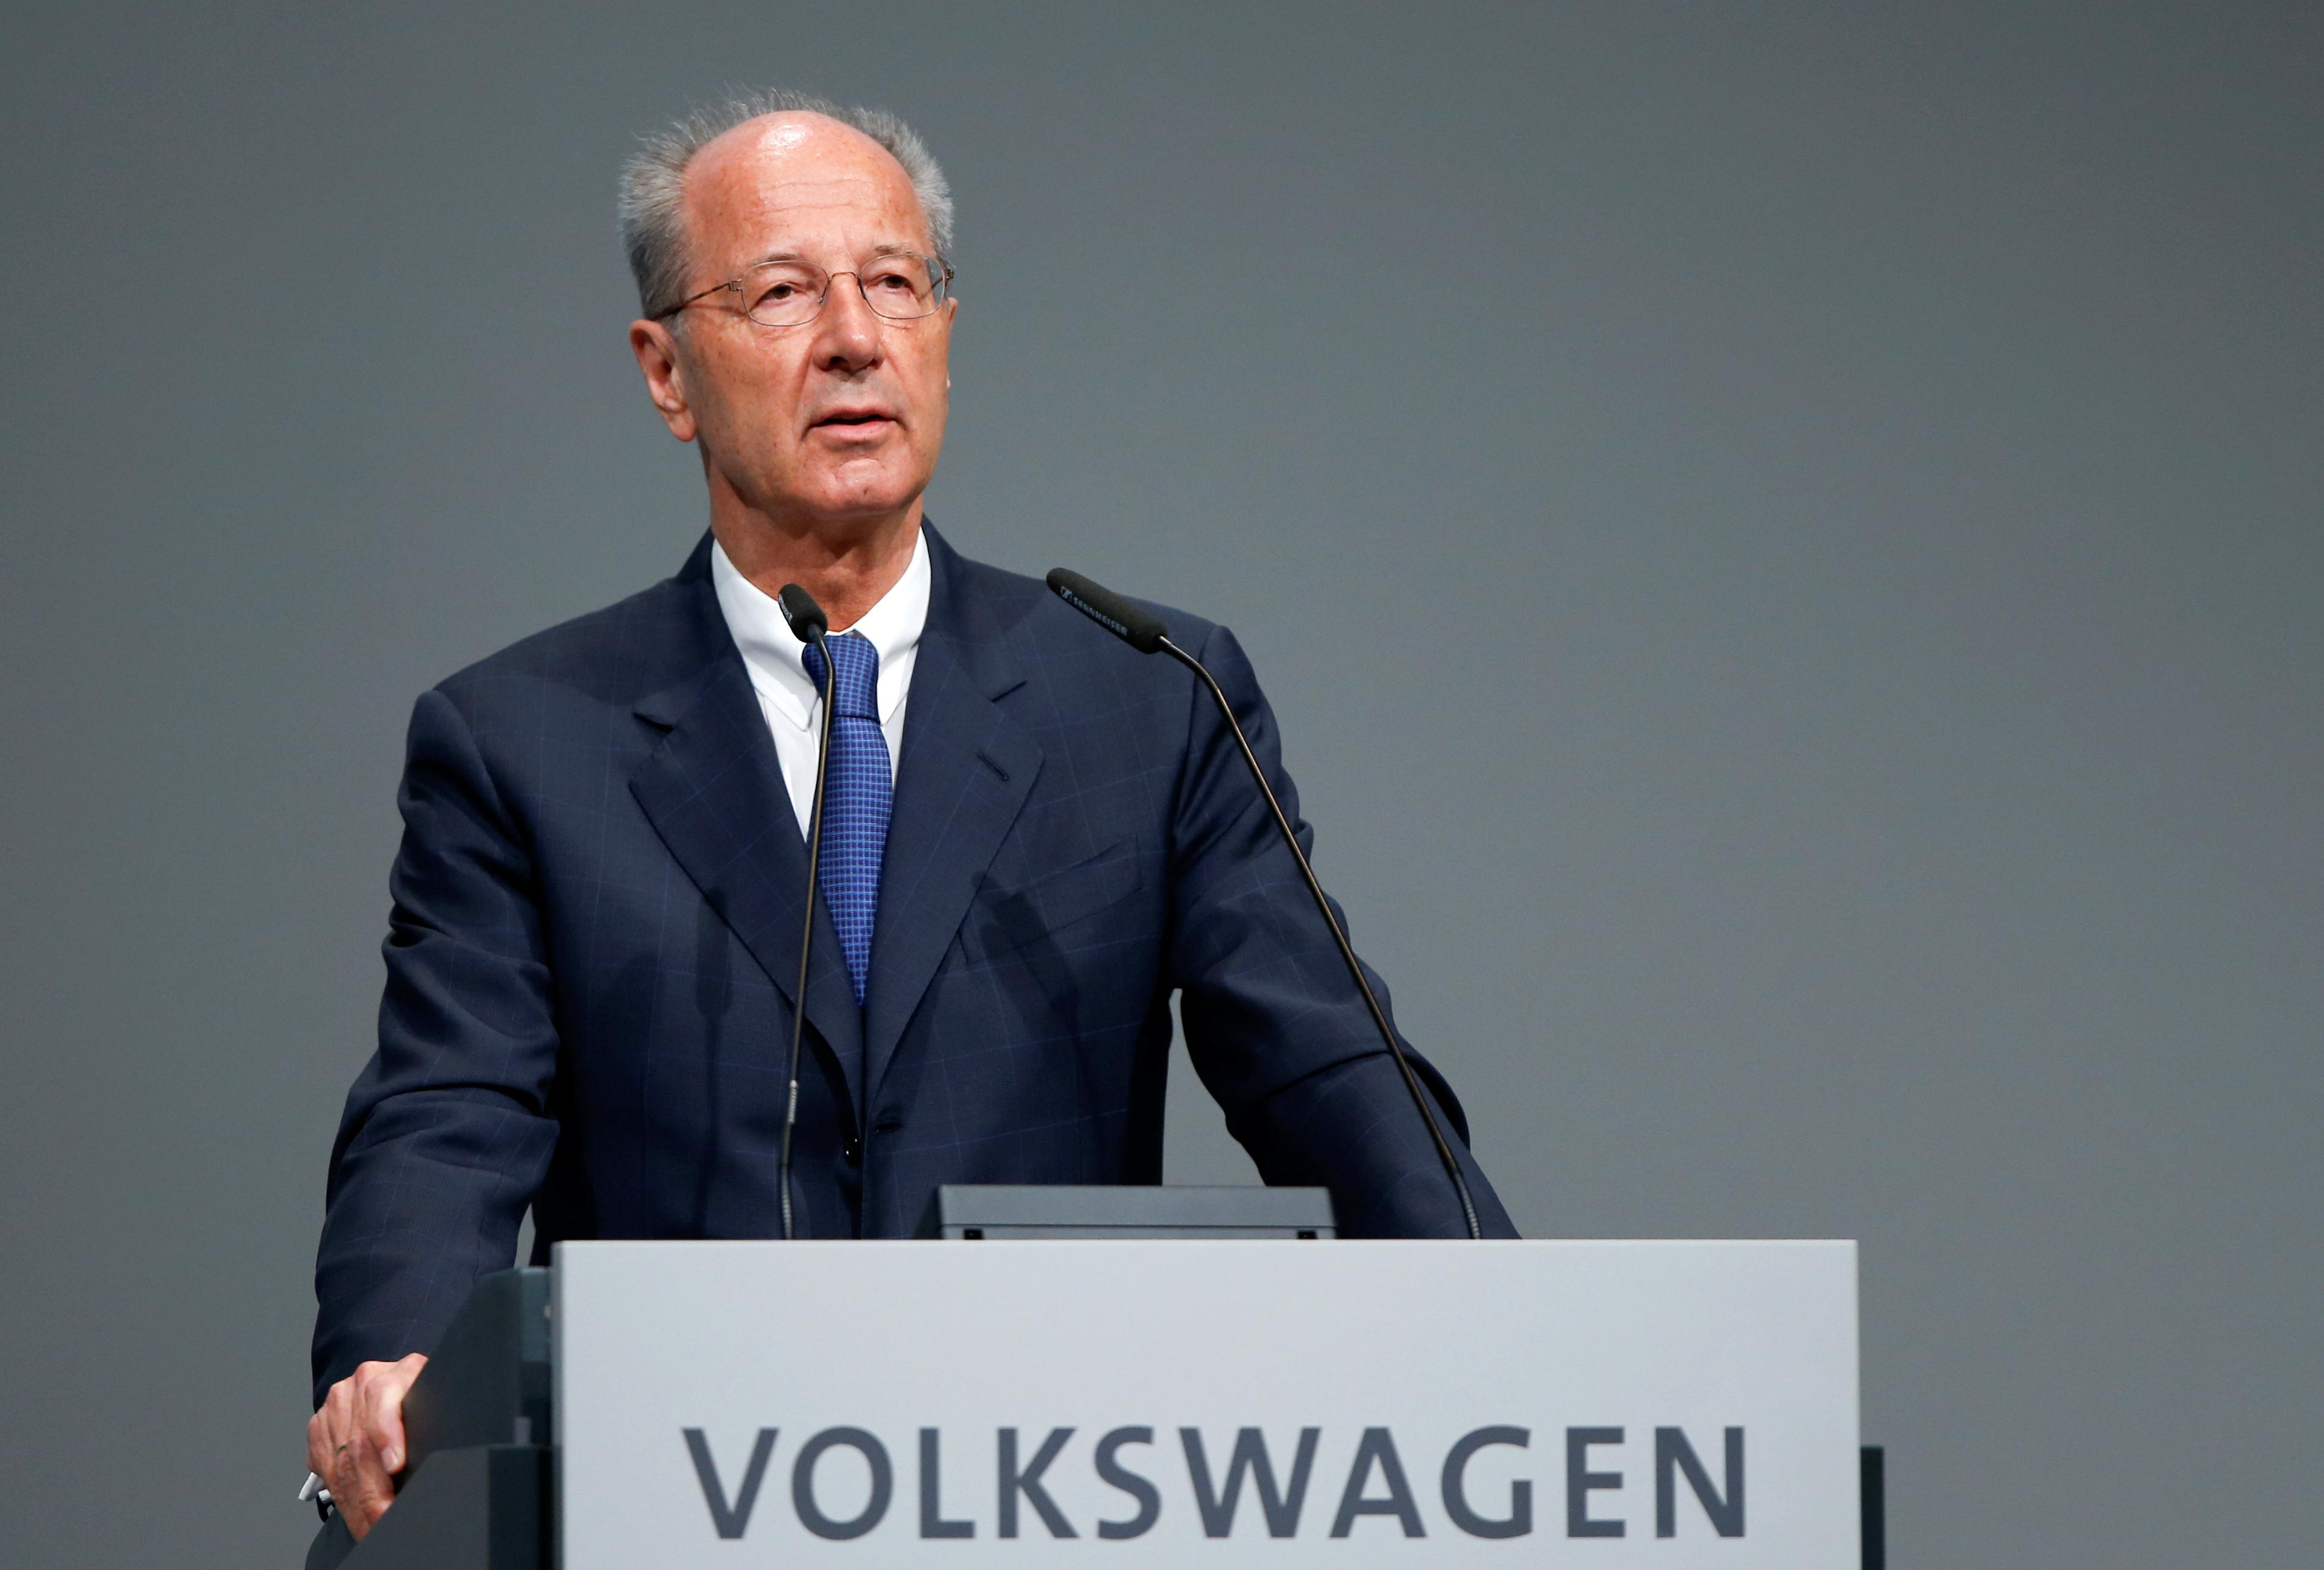 Small electric cars may be unaffordable for some: VW chairman to...